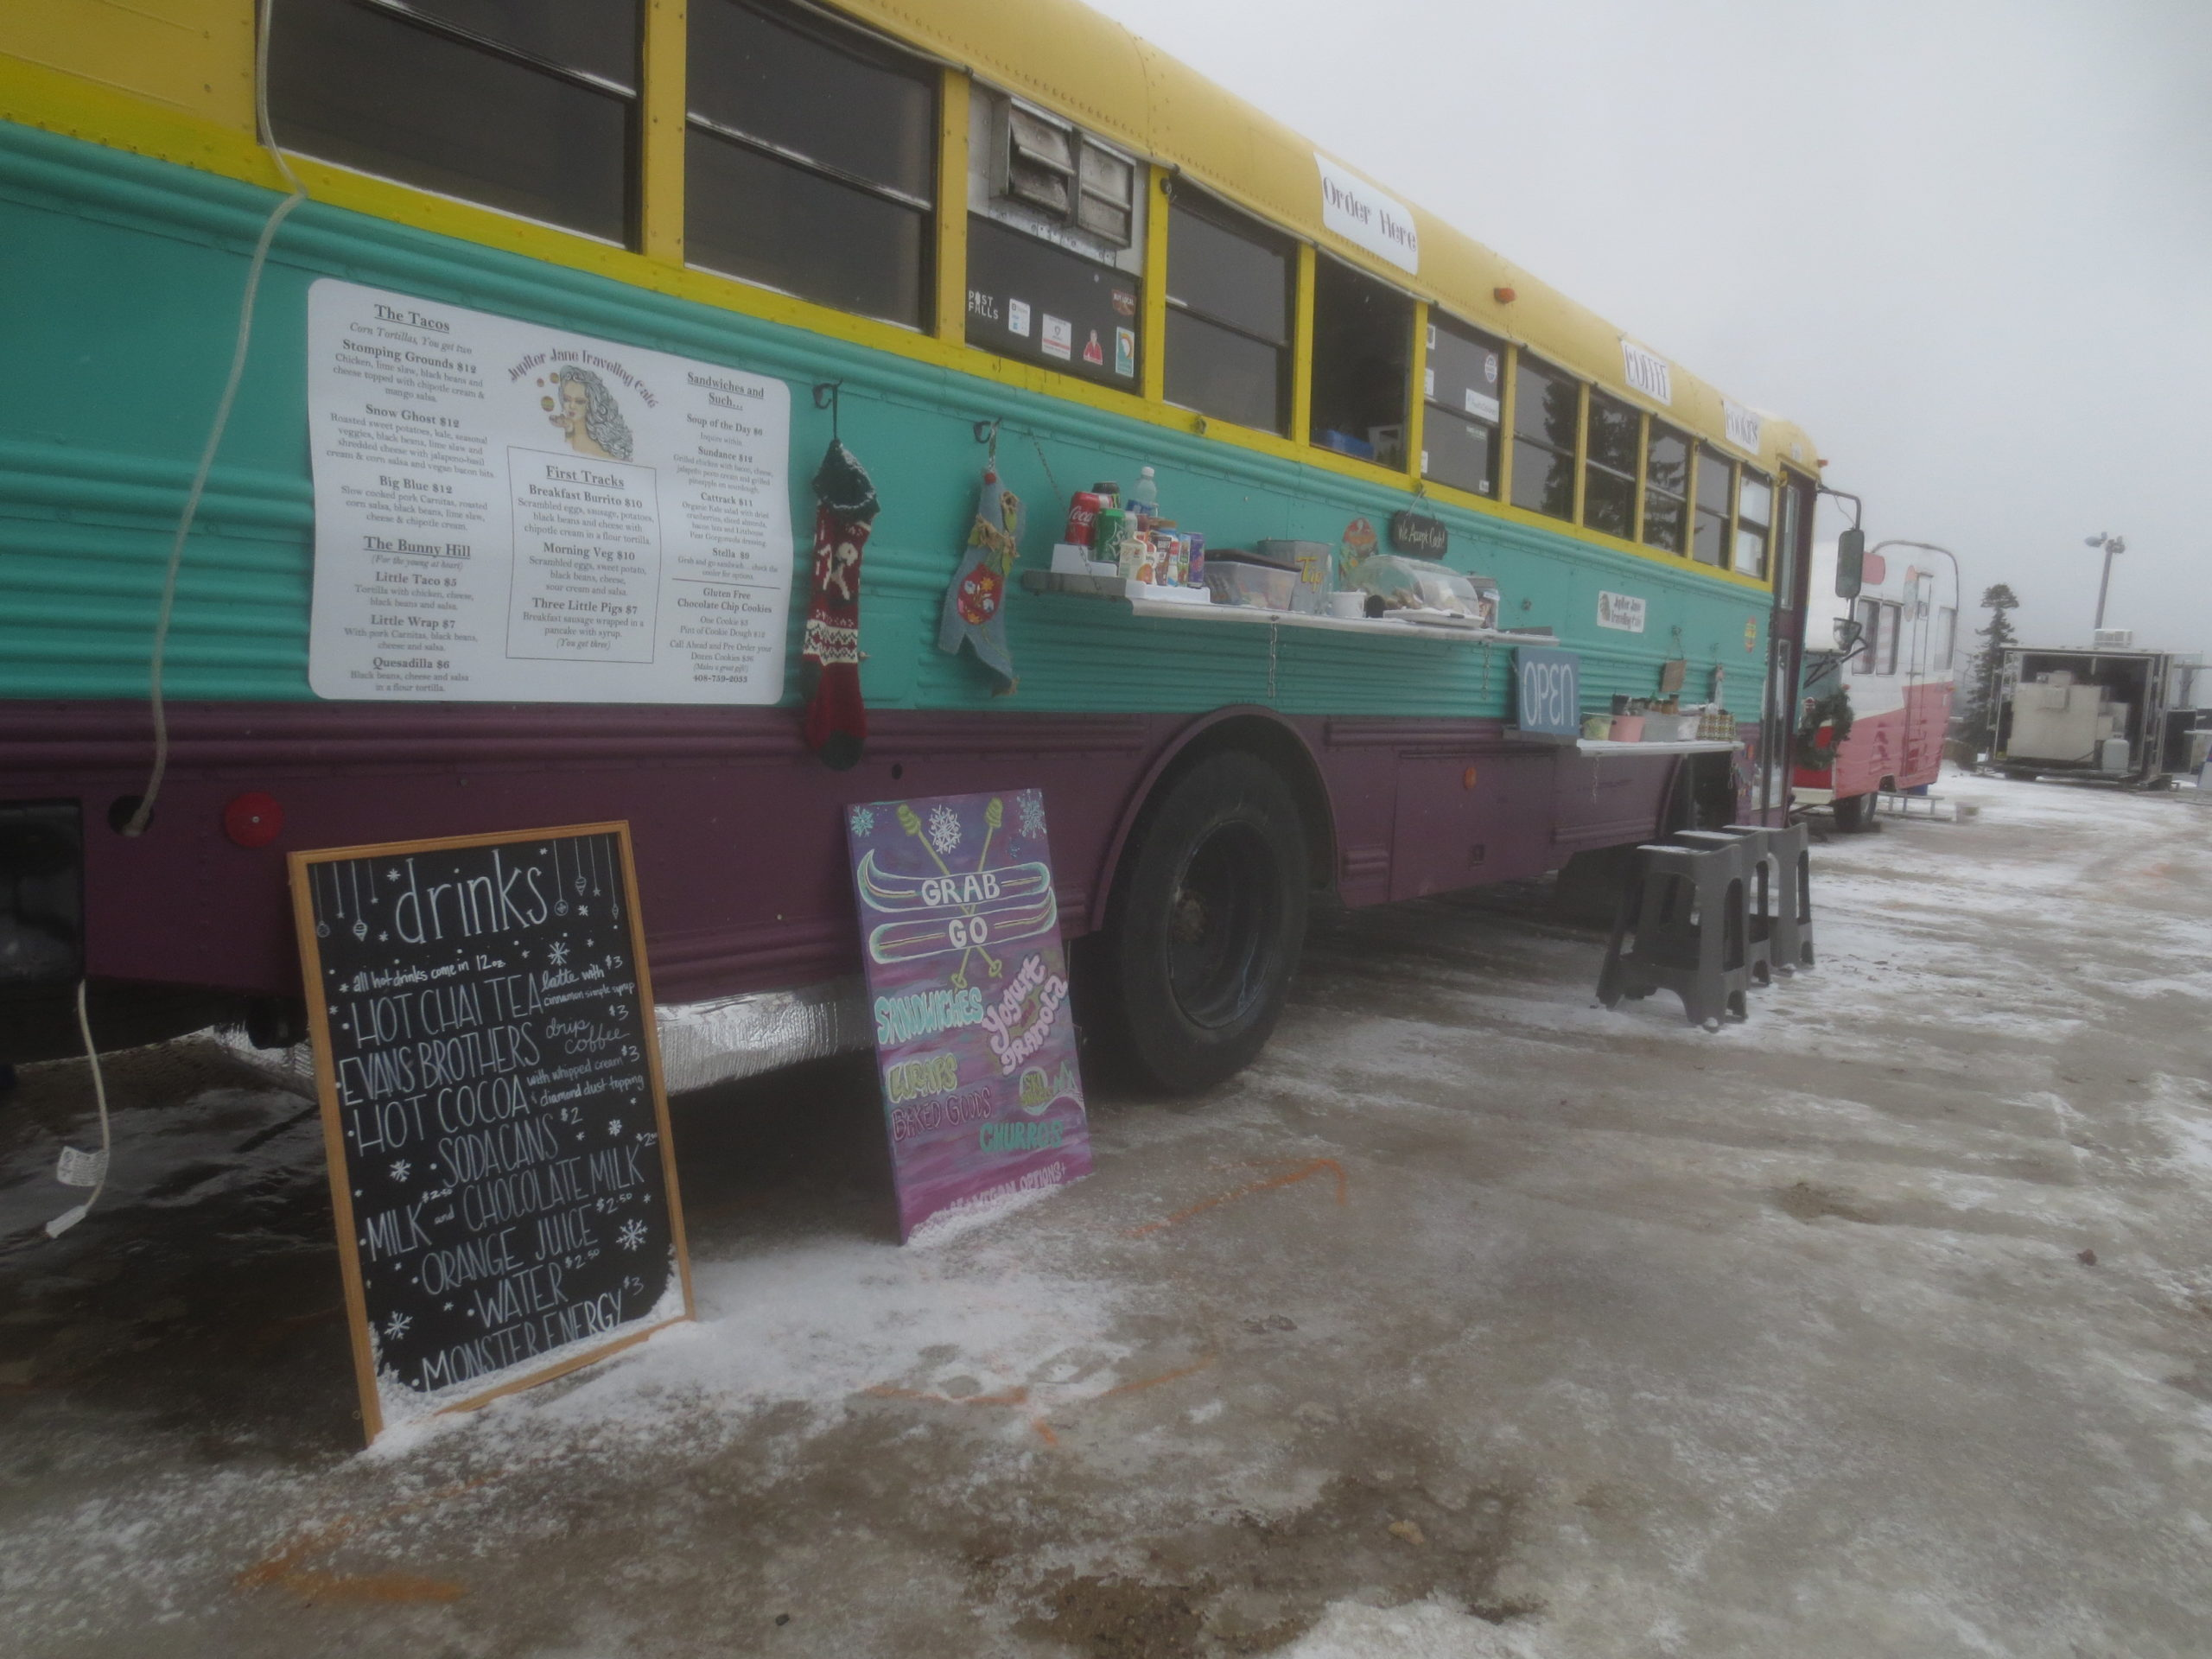 former school bus painted purple and teal and in use as a food truck